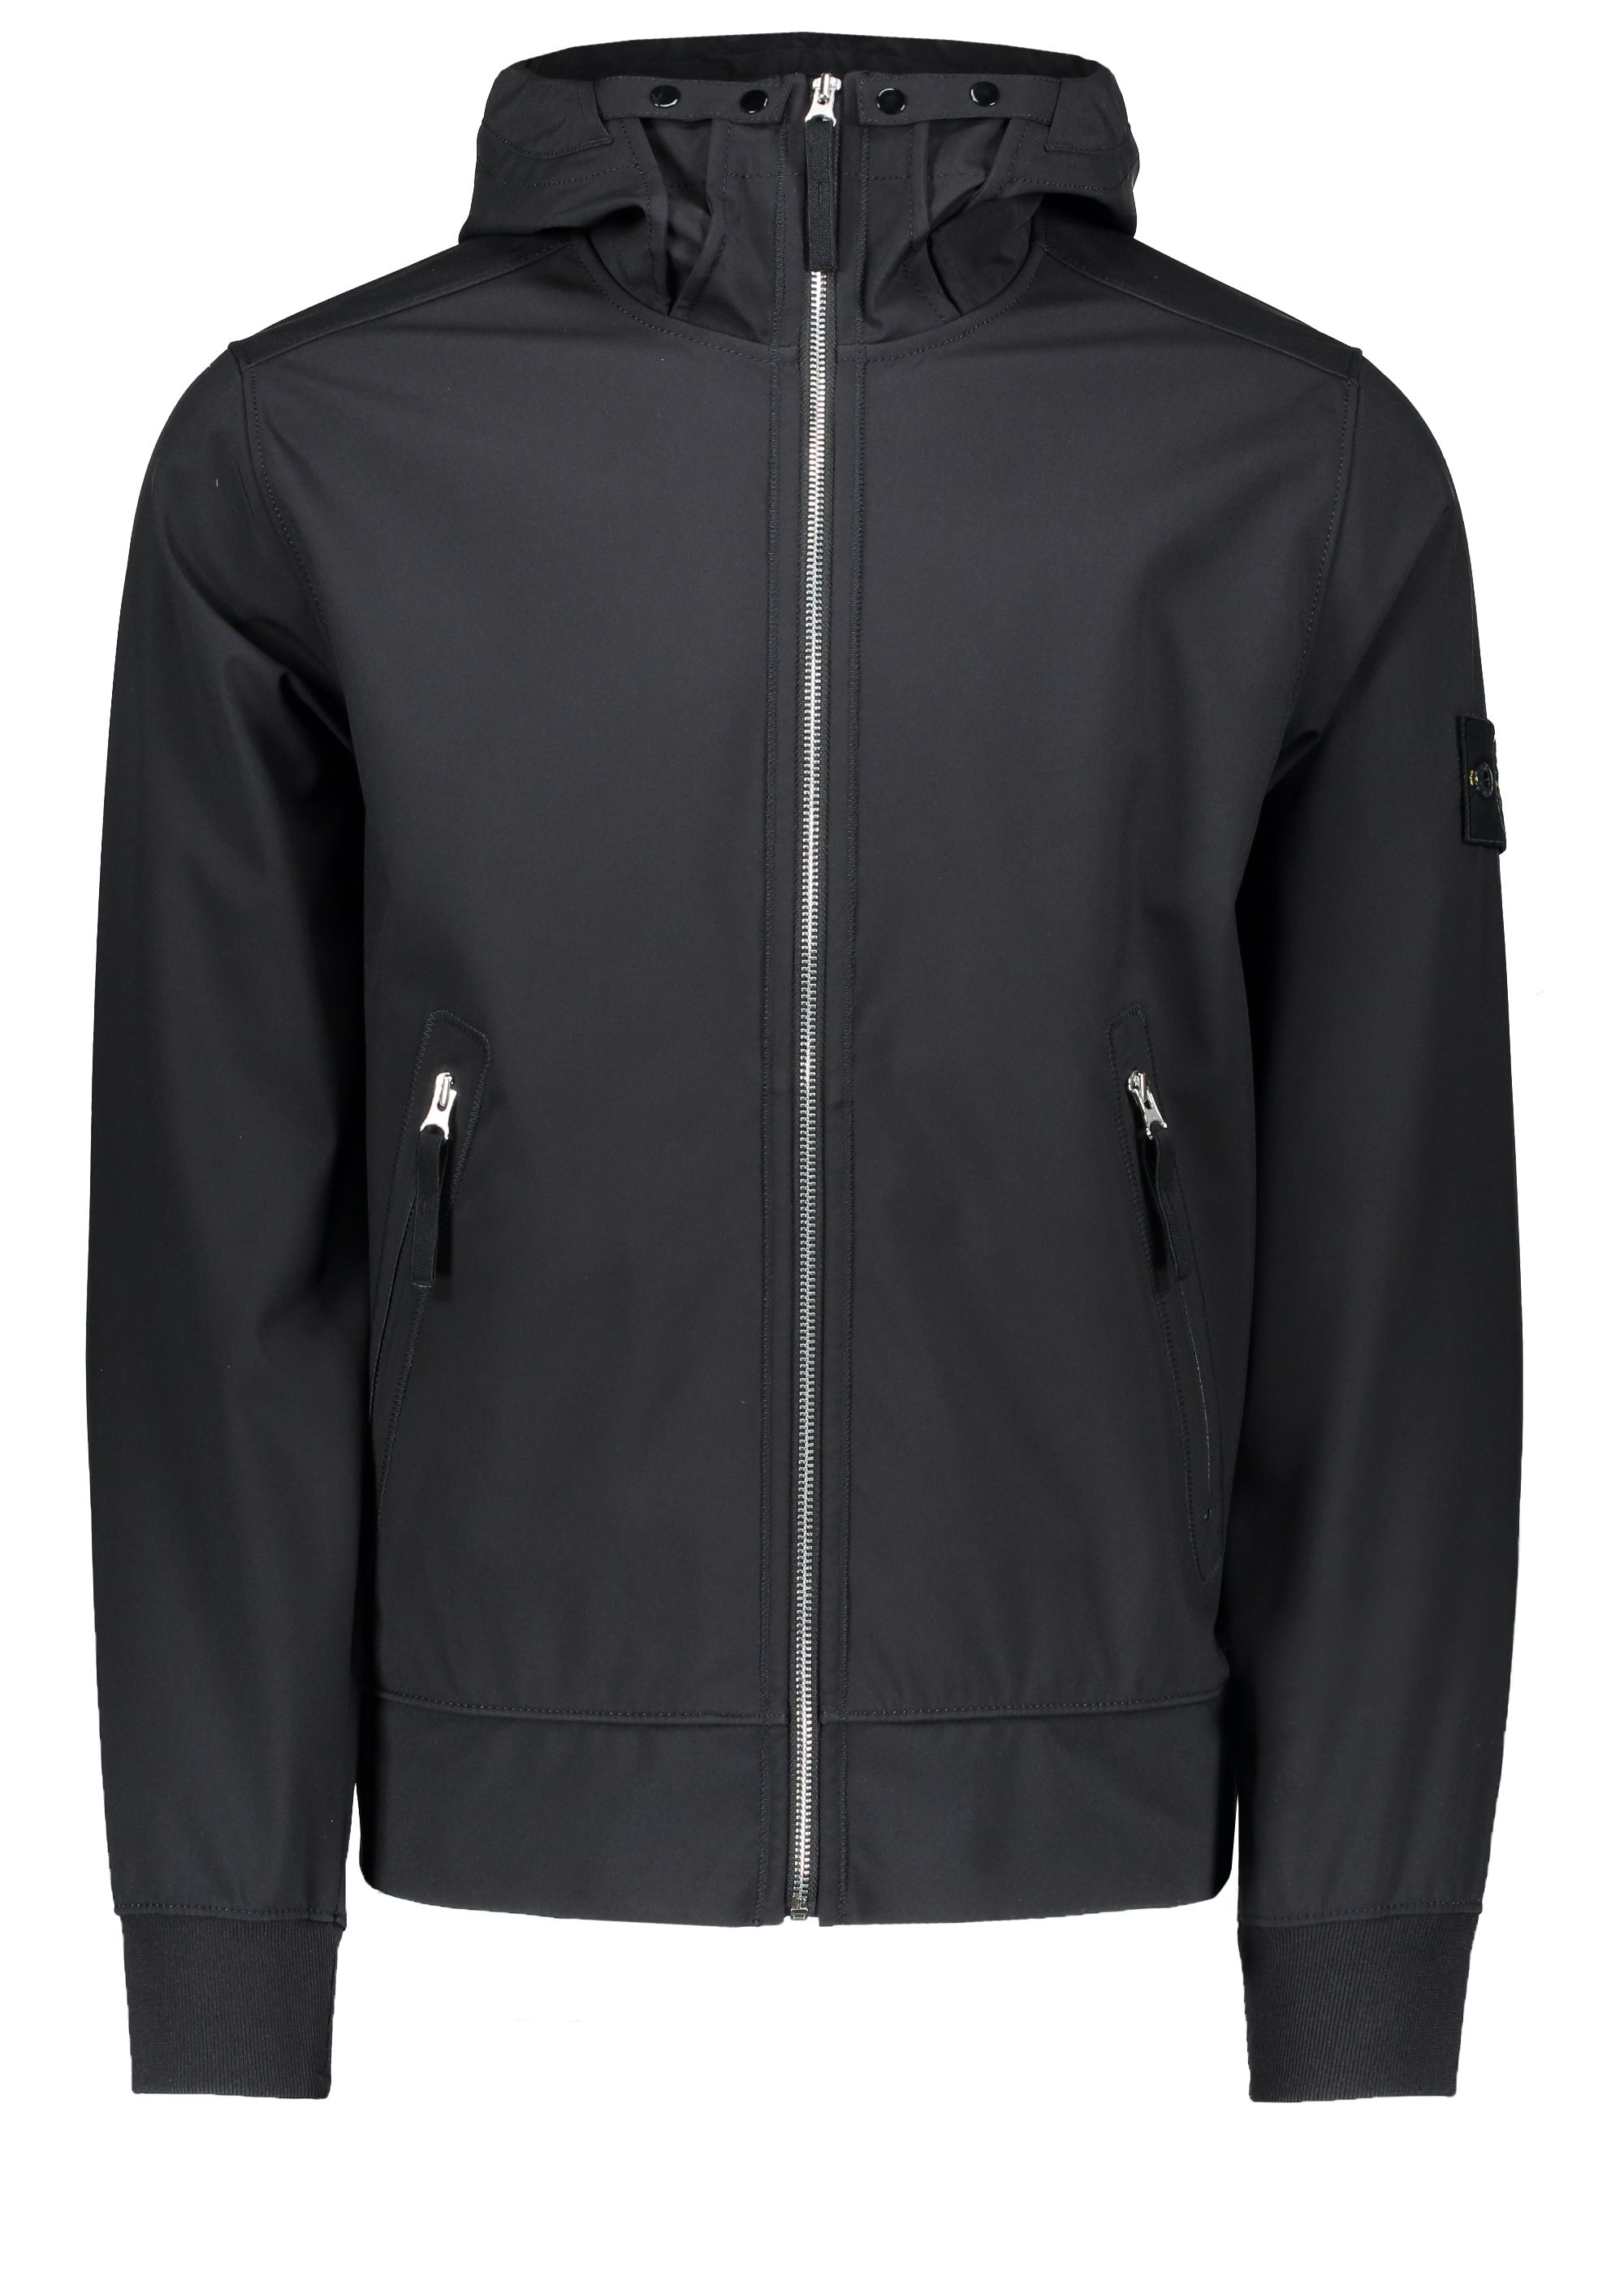 Stone Island Light Soft Shell R Hooded Jacket Jackets Casual Outwear Athletic Jacket [ 2798 x 2000 Pixel ]